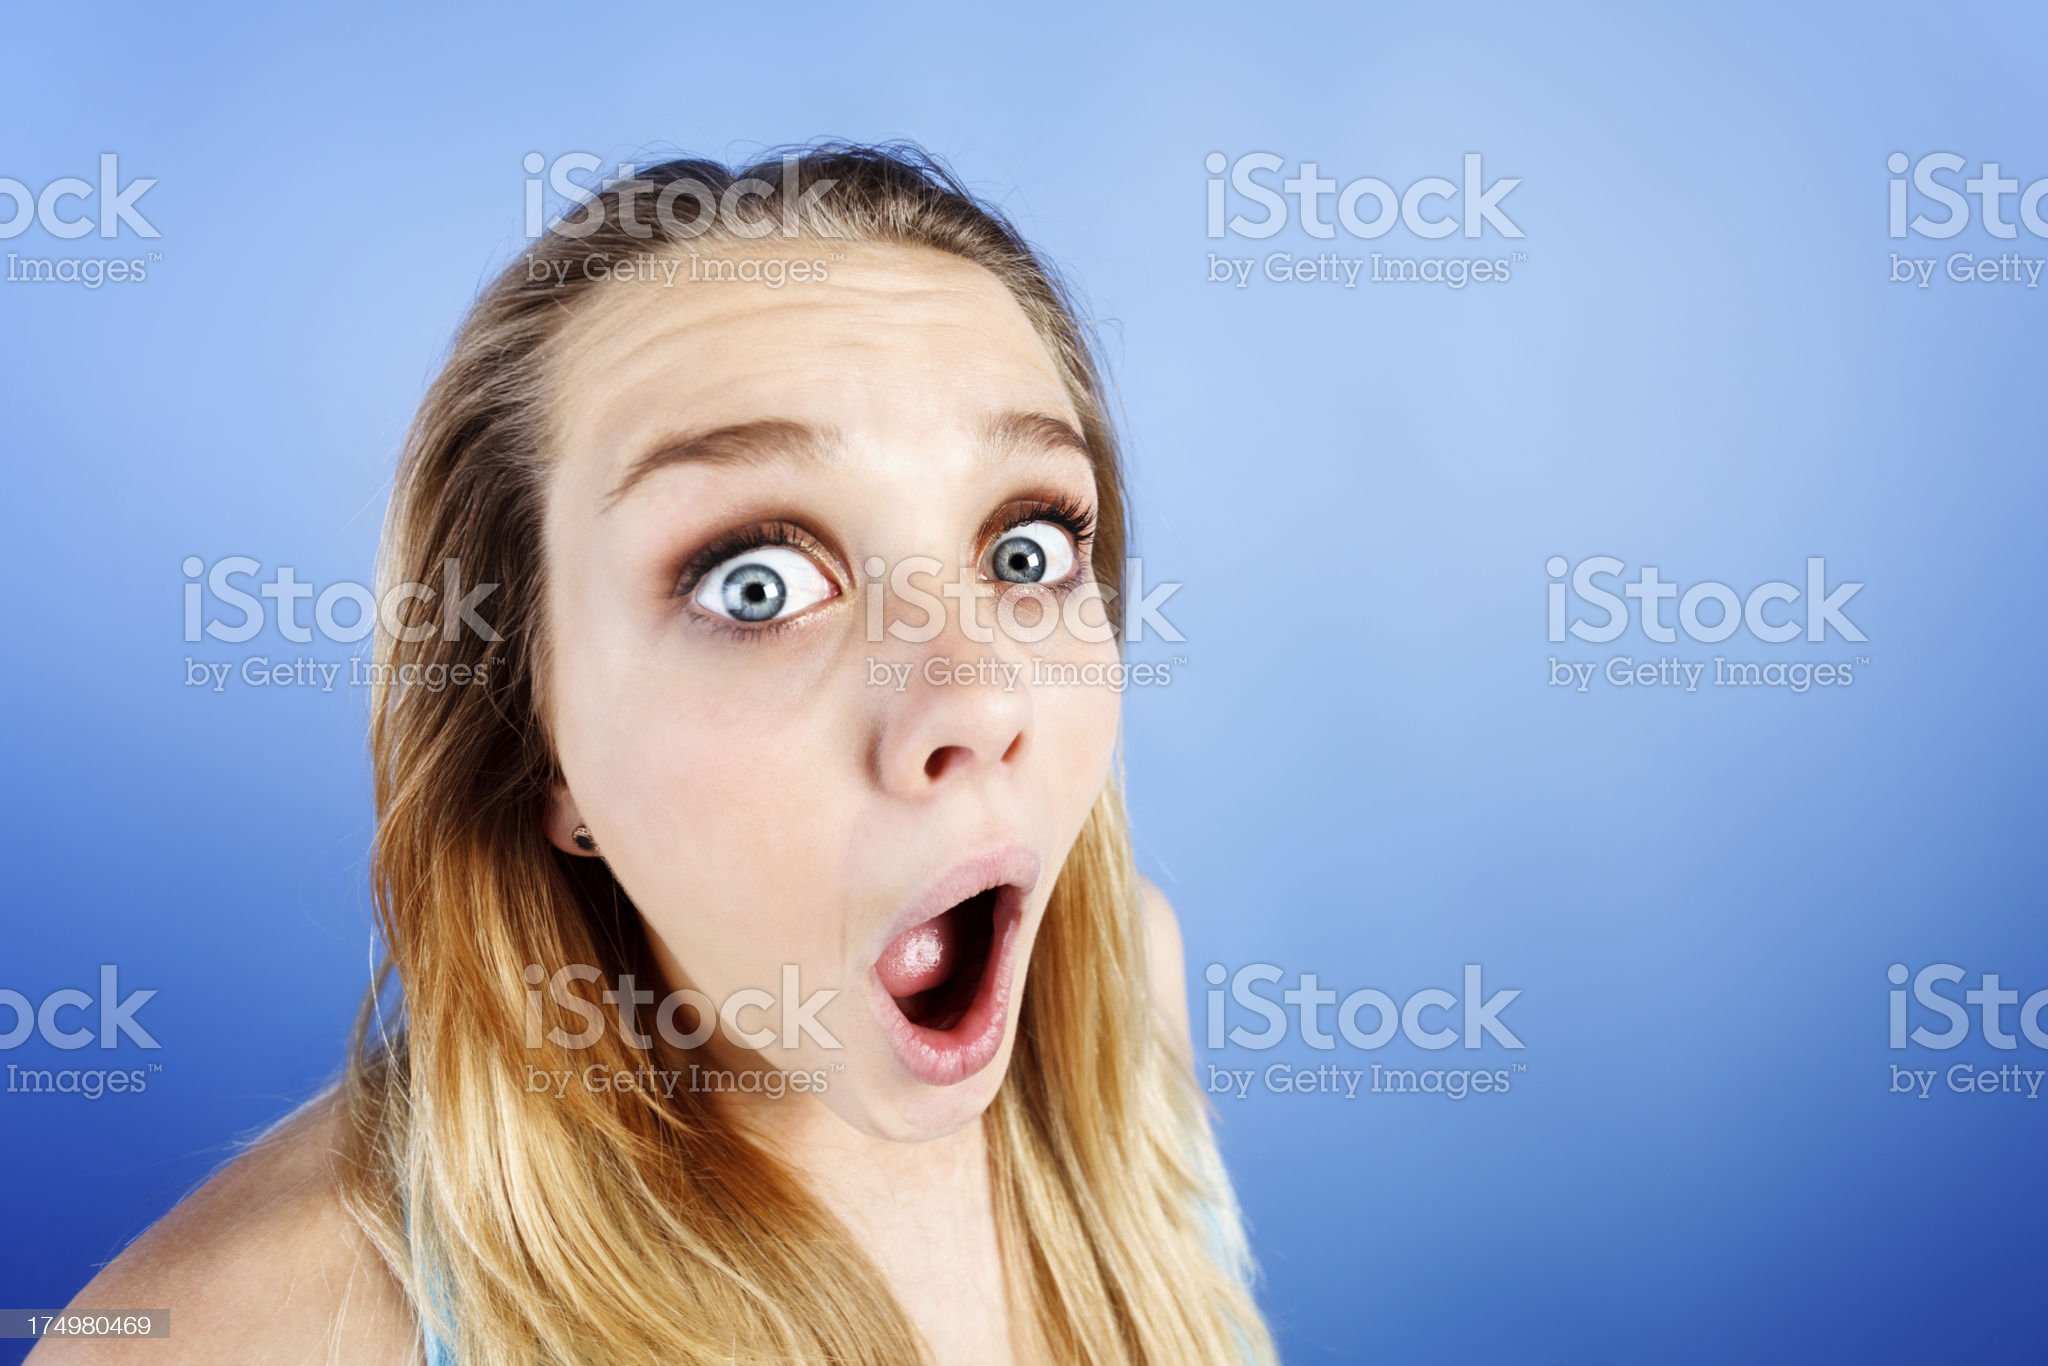 Distorted image of pretty teenager looking shocked on blue background royalty-free stock photo